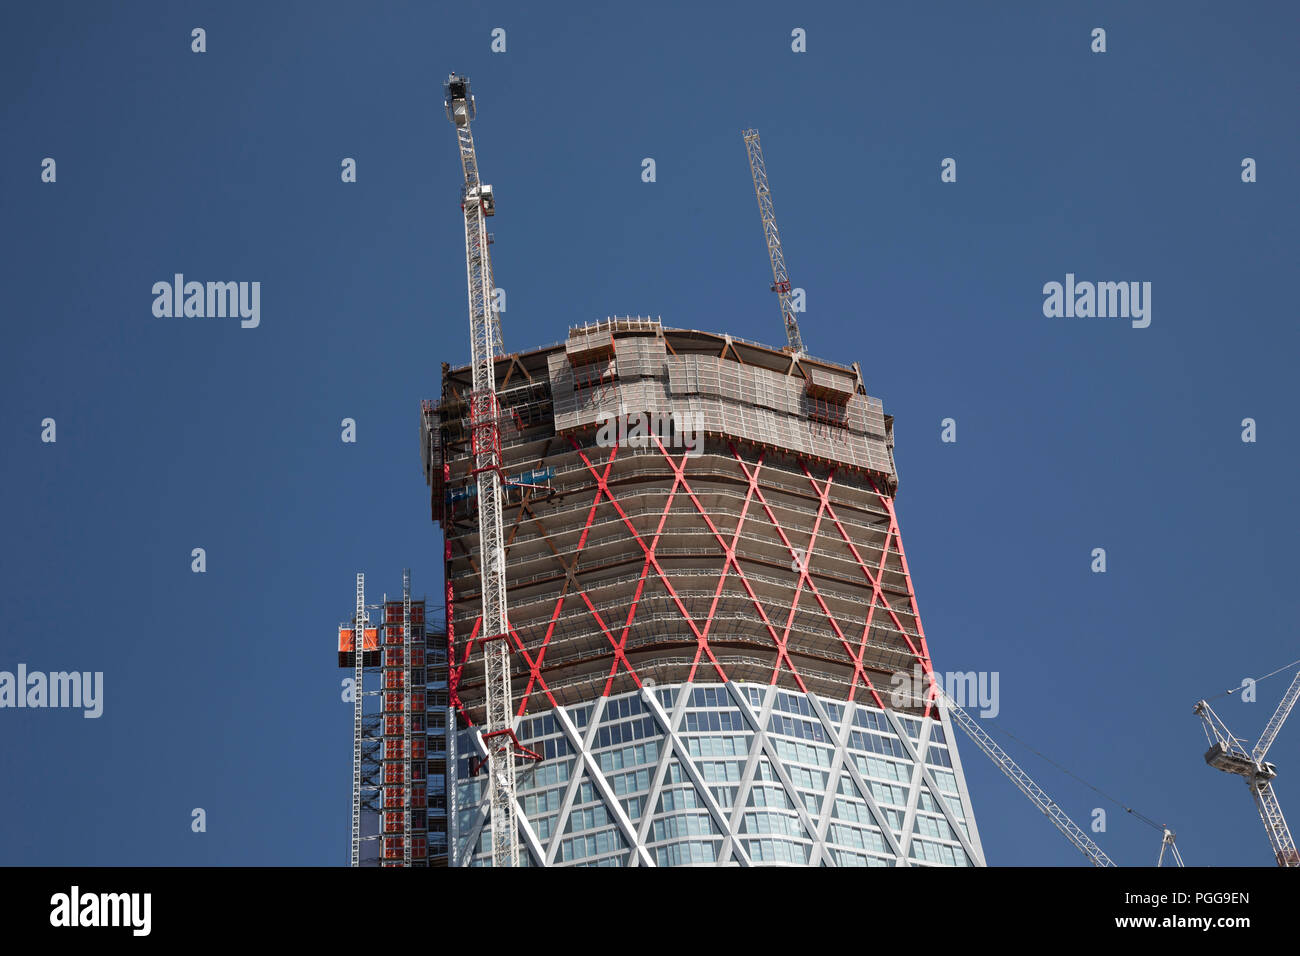 Construction of new 60 storey residential tower block Newfoundland at Canary Wharf financial district in London, England, United Kingdom. Newfoundland is a 60-storey residential building which will be situated on the western side of the Canary Wharf Estate and bound by Westferry Road to the west, Middle Dock to the east, and Bank Street to the south. The slim diamond shape of the tower is determined by the narrow footprint of the site. The dia-grid structural system expressed on the facade of the building supports and braces the structure. - Stock Image